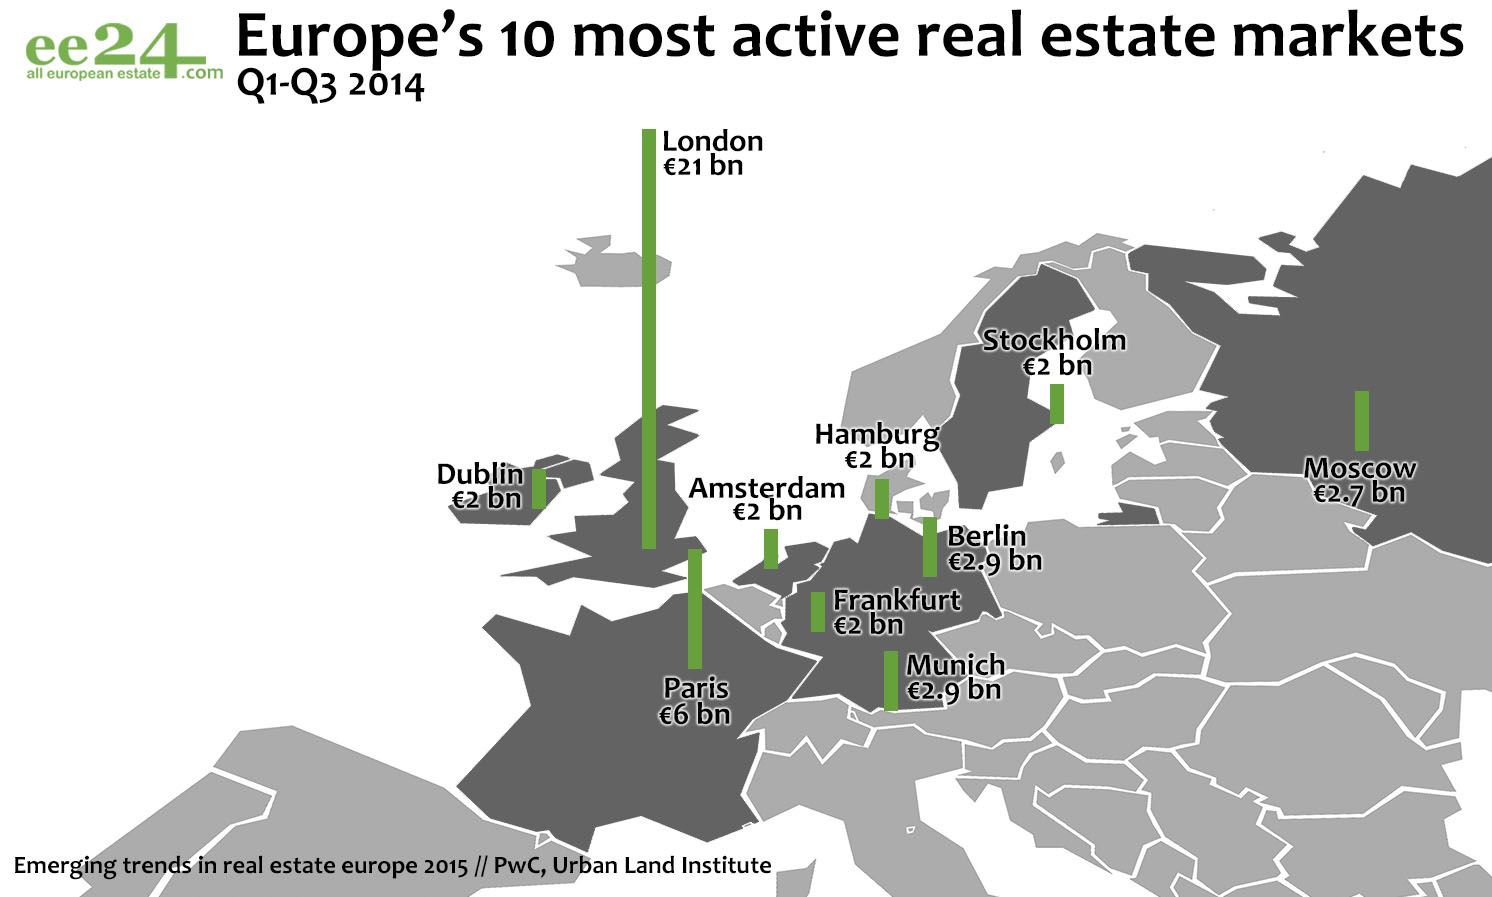 The best cities in Europe for real estate investments – 2015 | Photo 4 | ee24